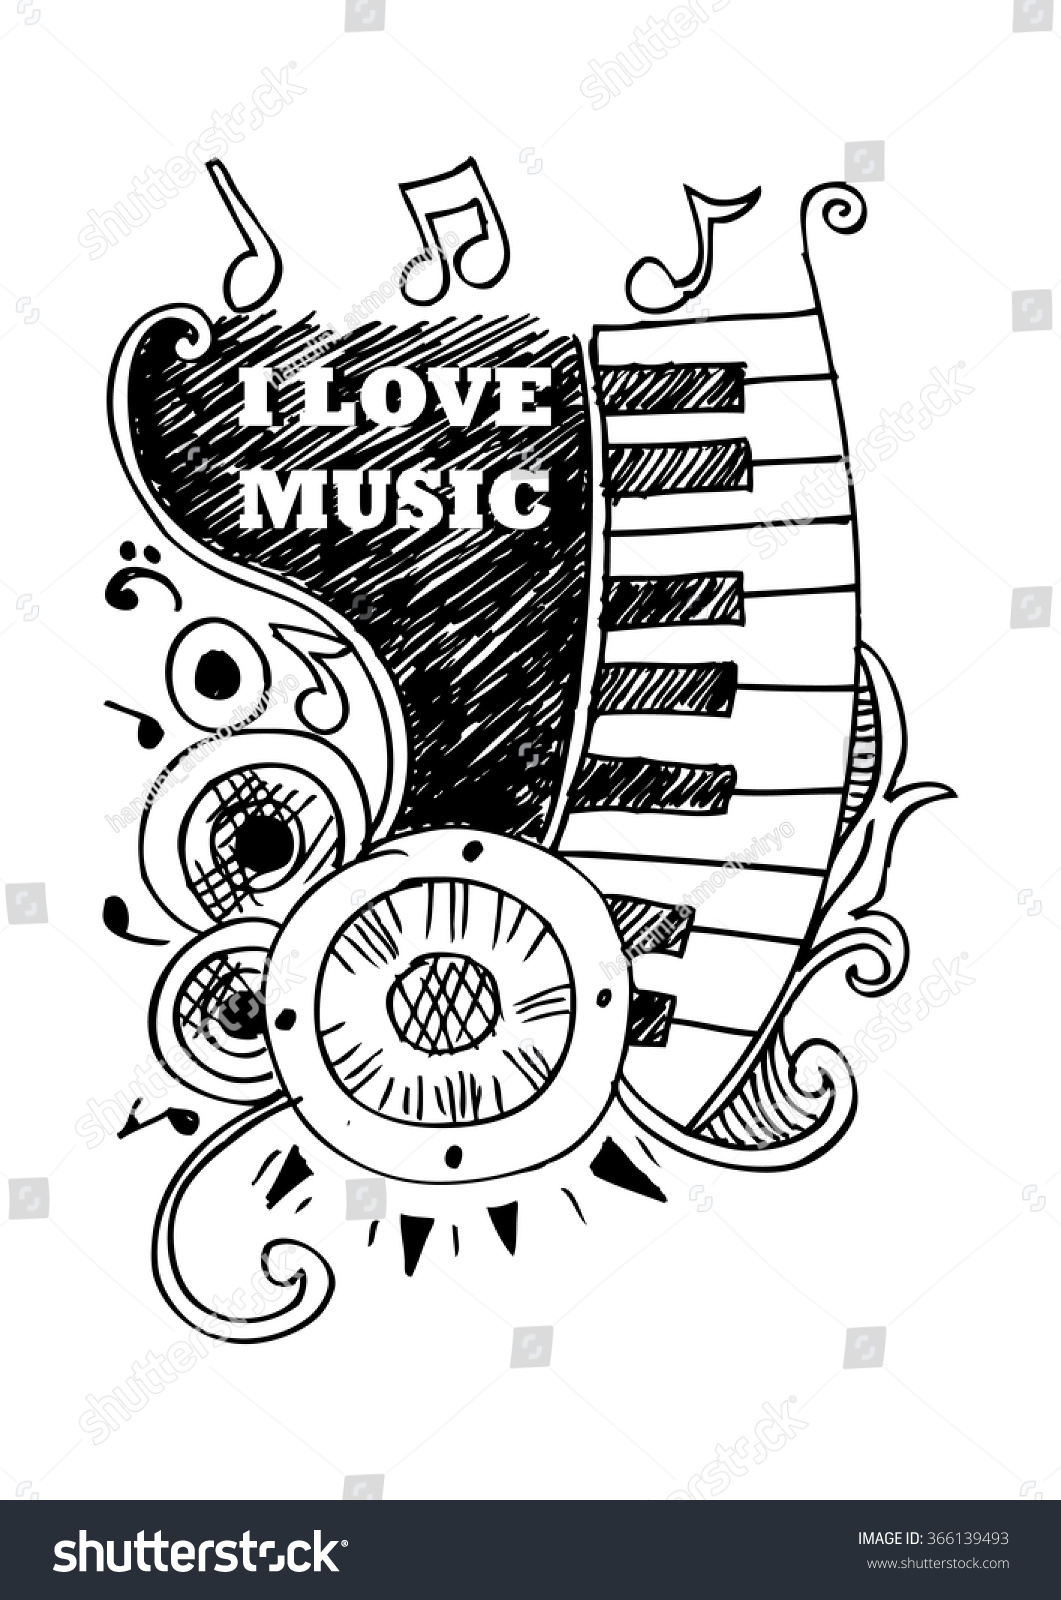 Music sketches with text i love music vector illustration